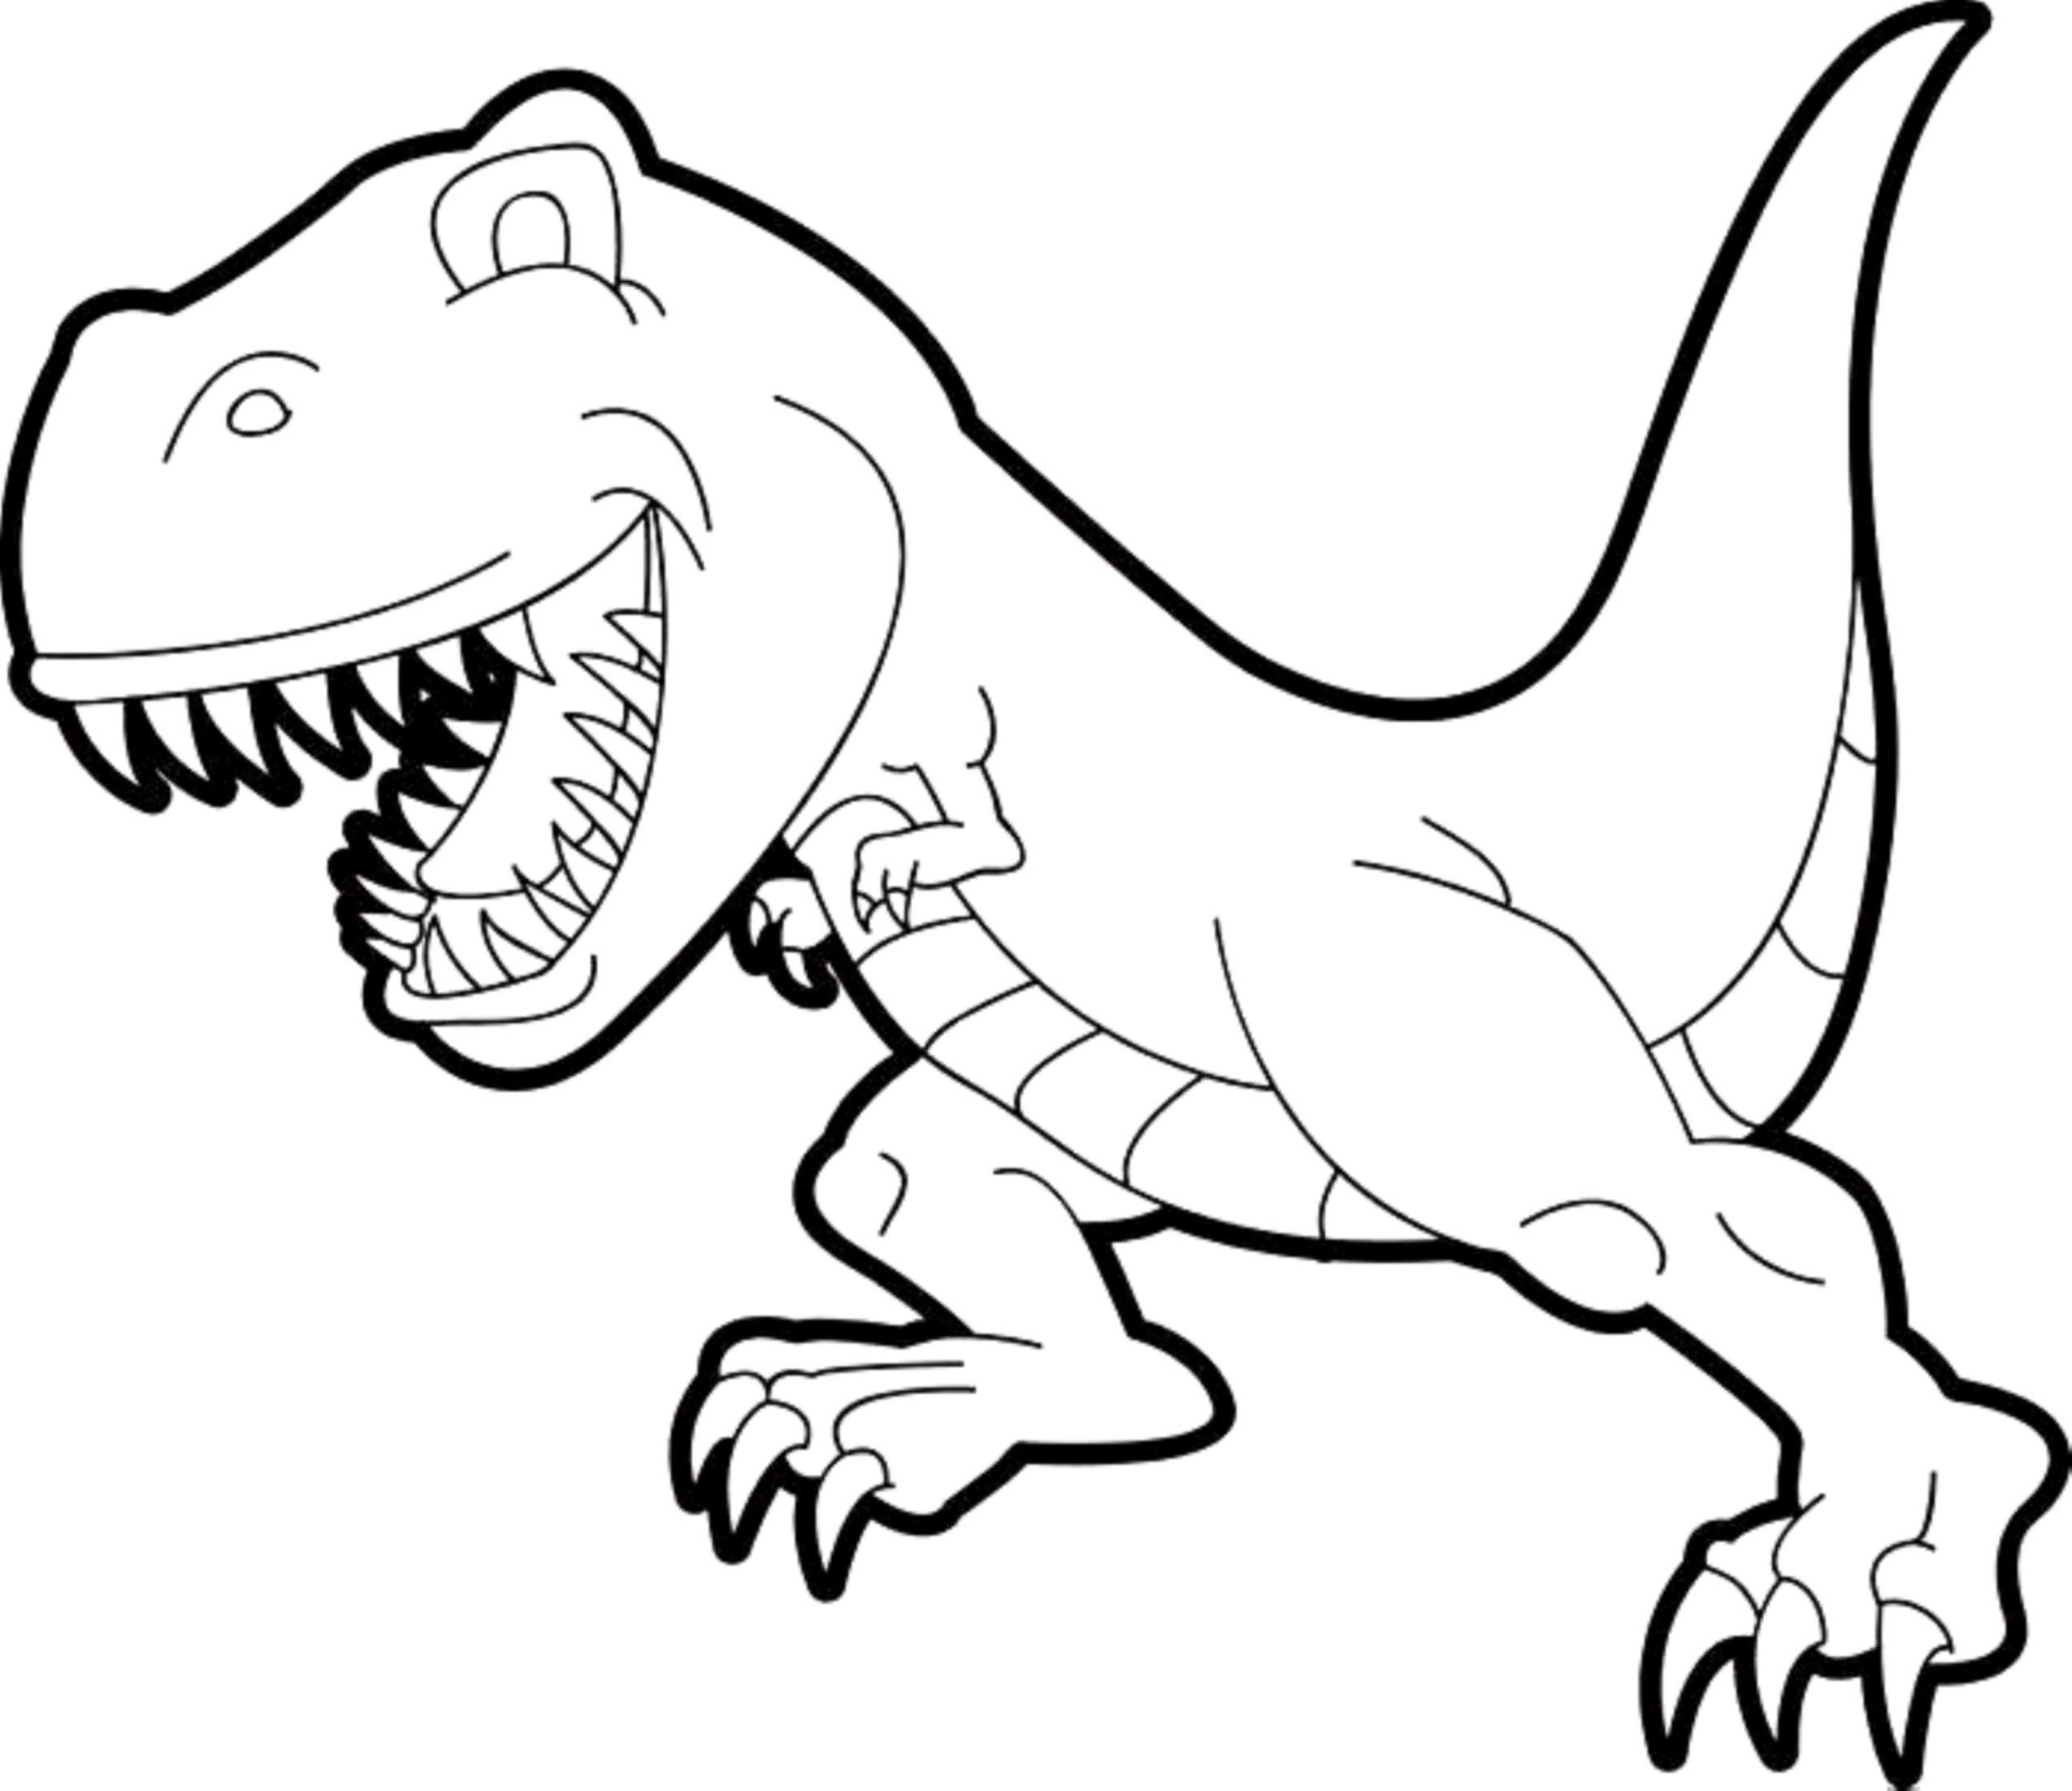 dinosaur color free printable dinosaur coloring pages for kids art hearty dinosaur color